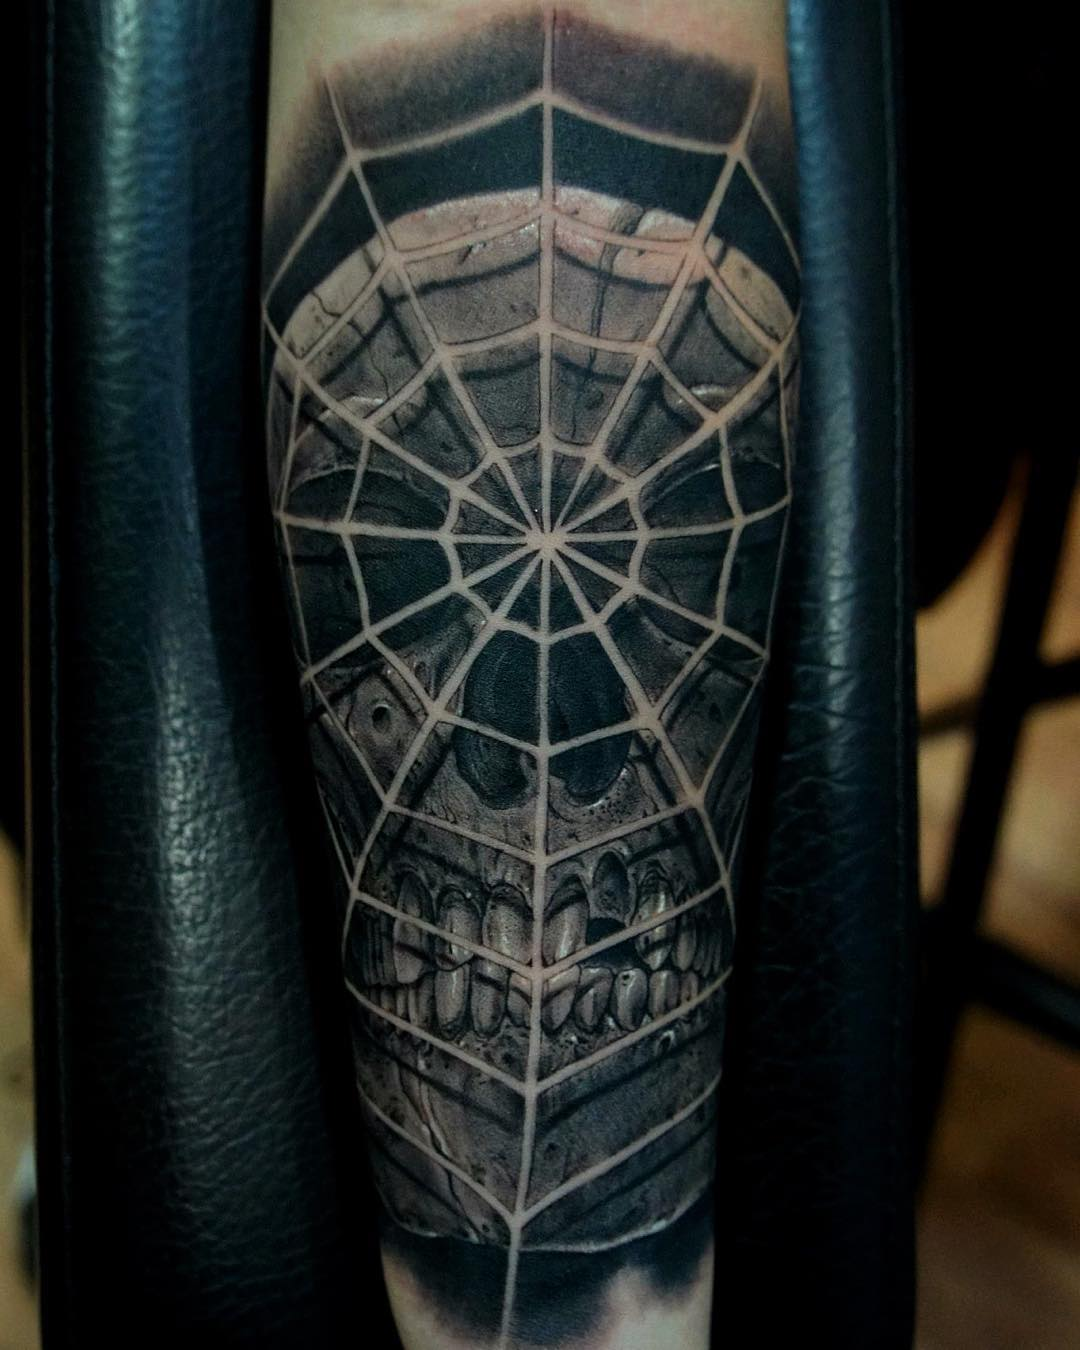 Spider Web Skull Tattoo | Best Tattoo Ideas Gallery